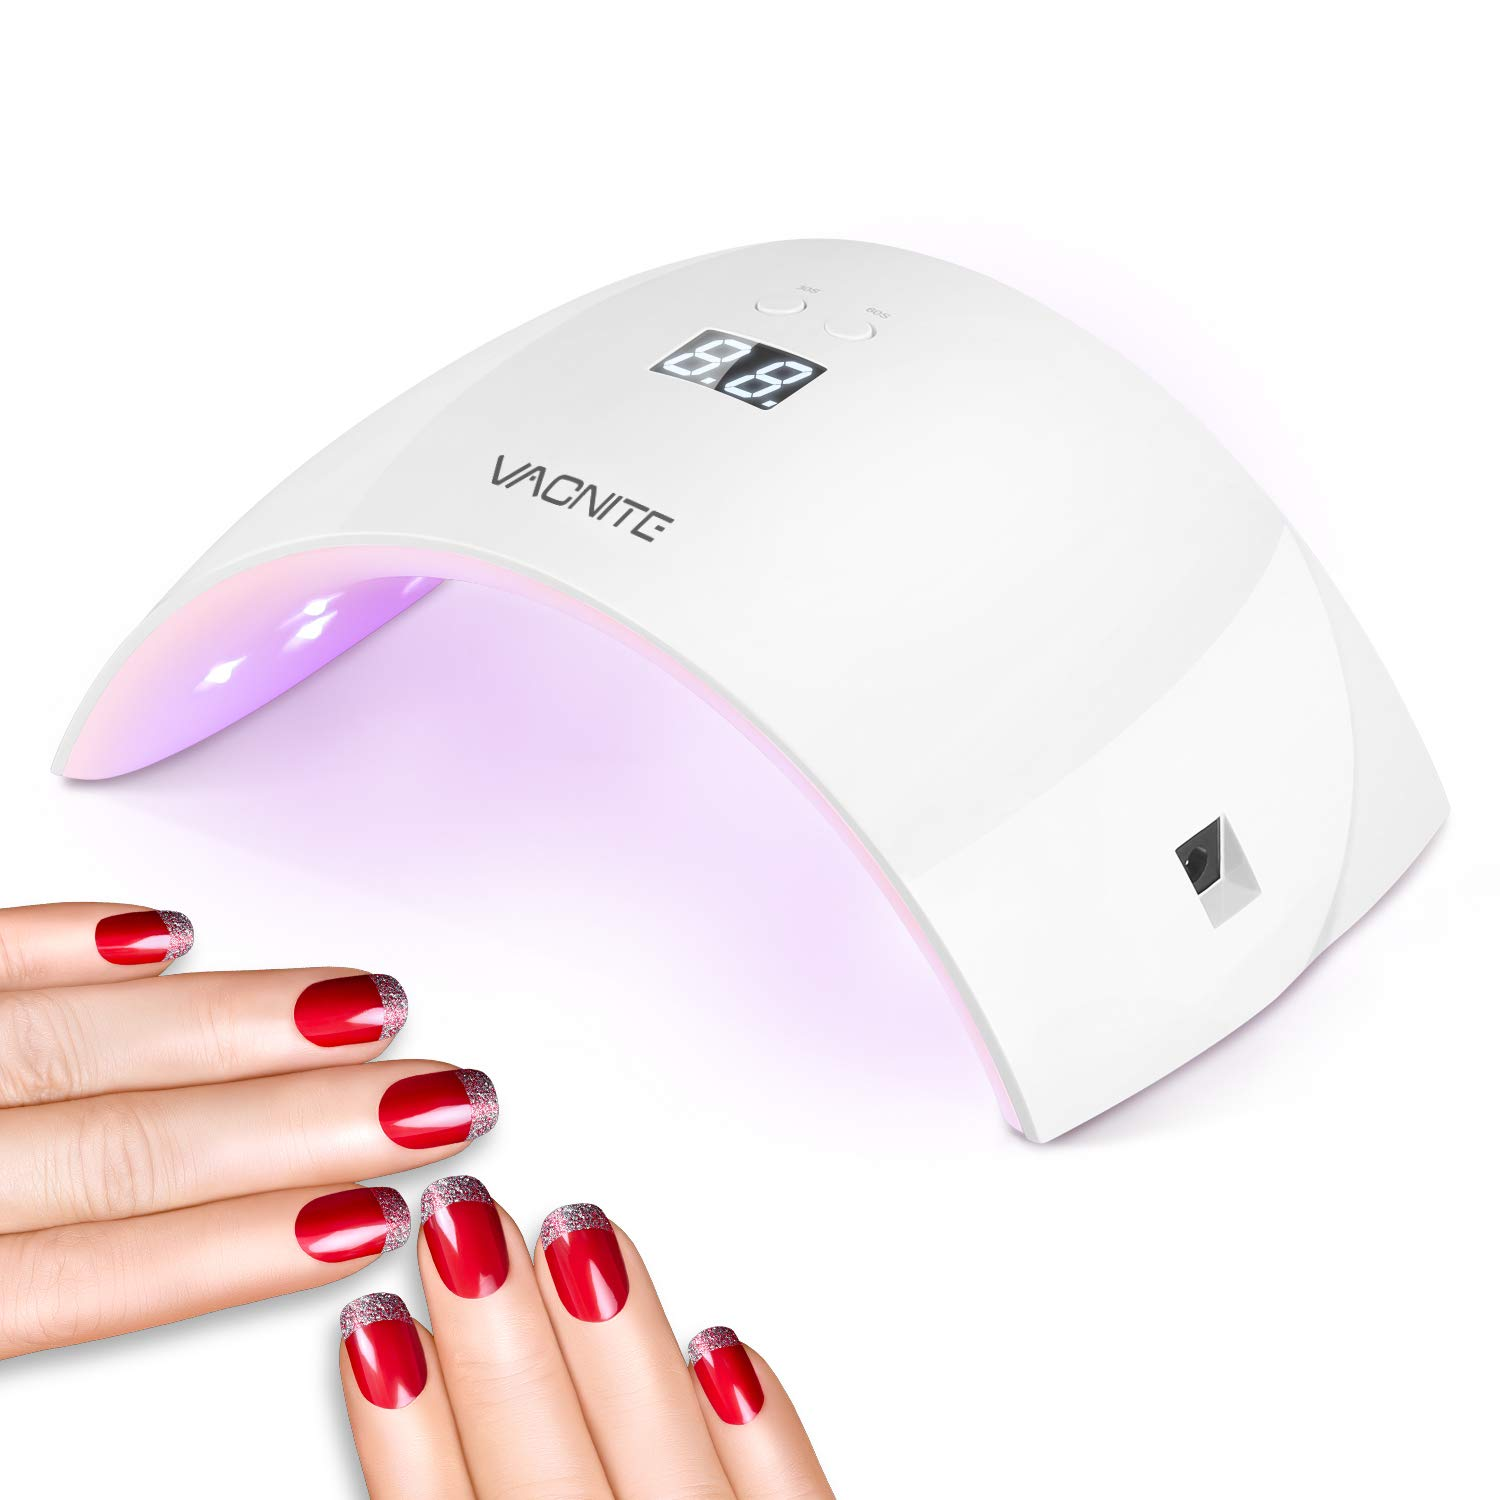 Nail Led Lcd Gels Dryer For 30s60s Timer With Automatic Vacnite Setting Fingernailamp; Sensor Uv Lamp24w Curing Toenail And qMpUzSV